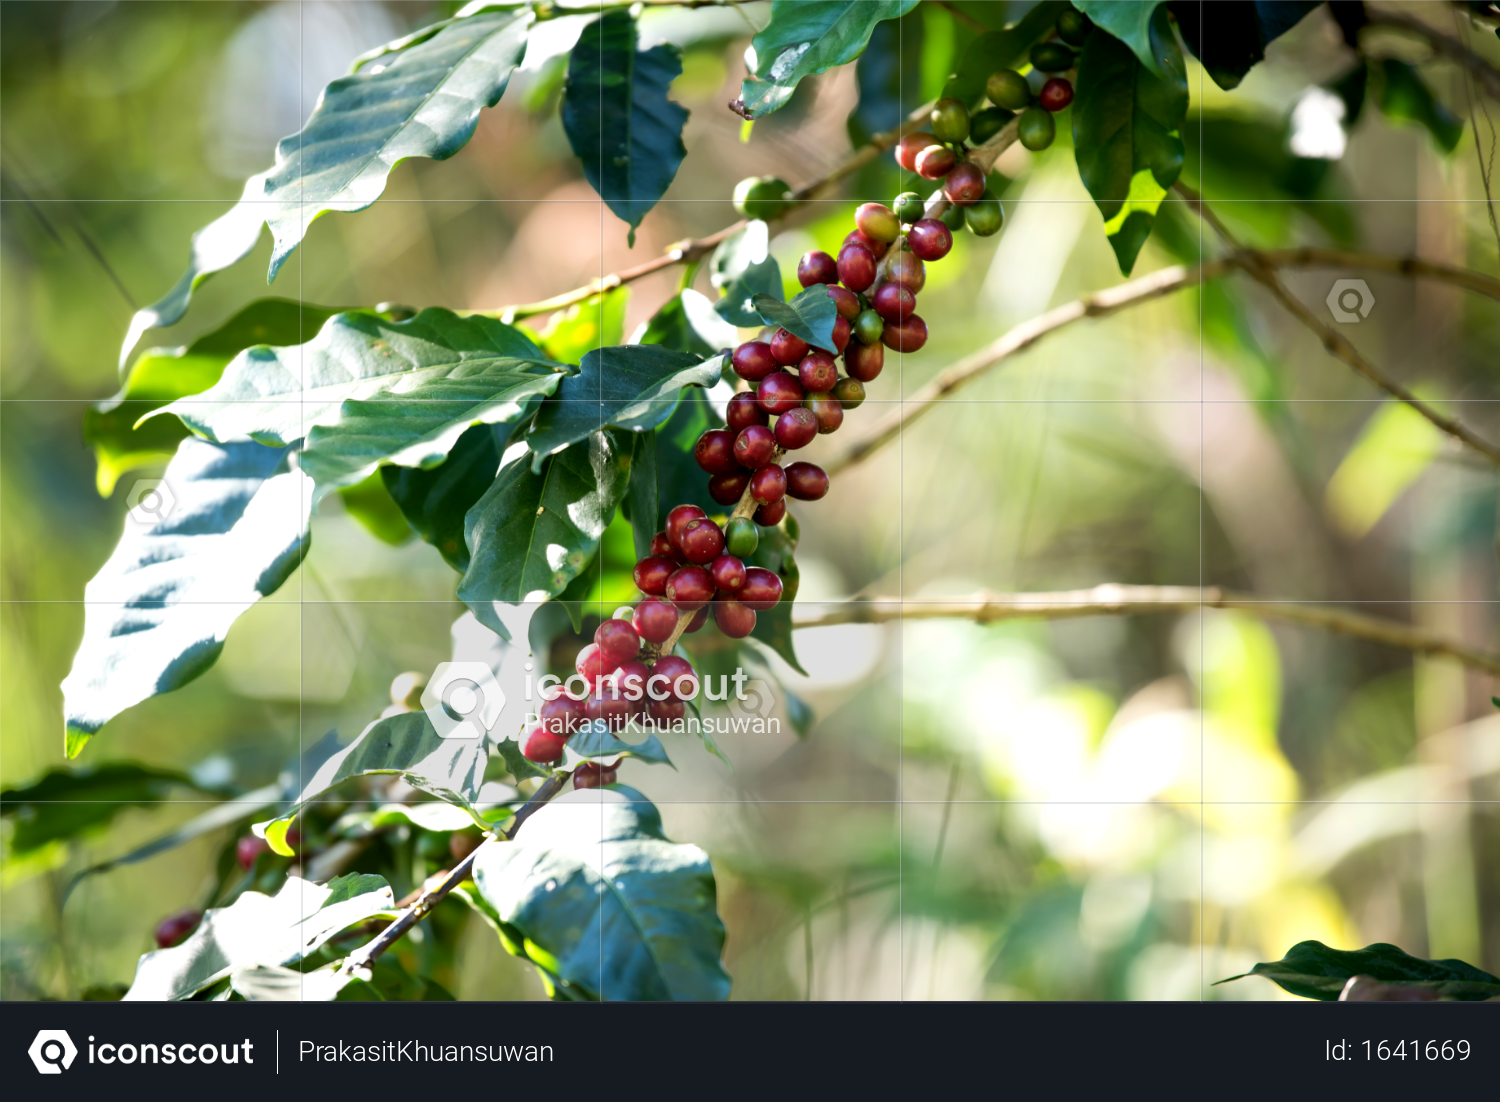 Premium Coffee Bean Berry Ripening On Coffee Farm Photo Download In Png Jpg Format Coffee Farm Farm Photo Premium Coffee